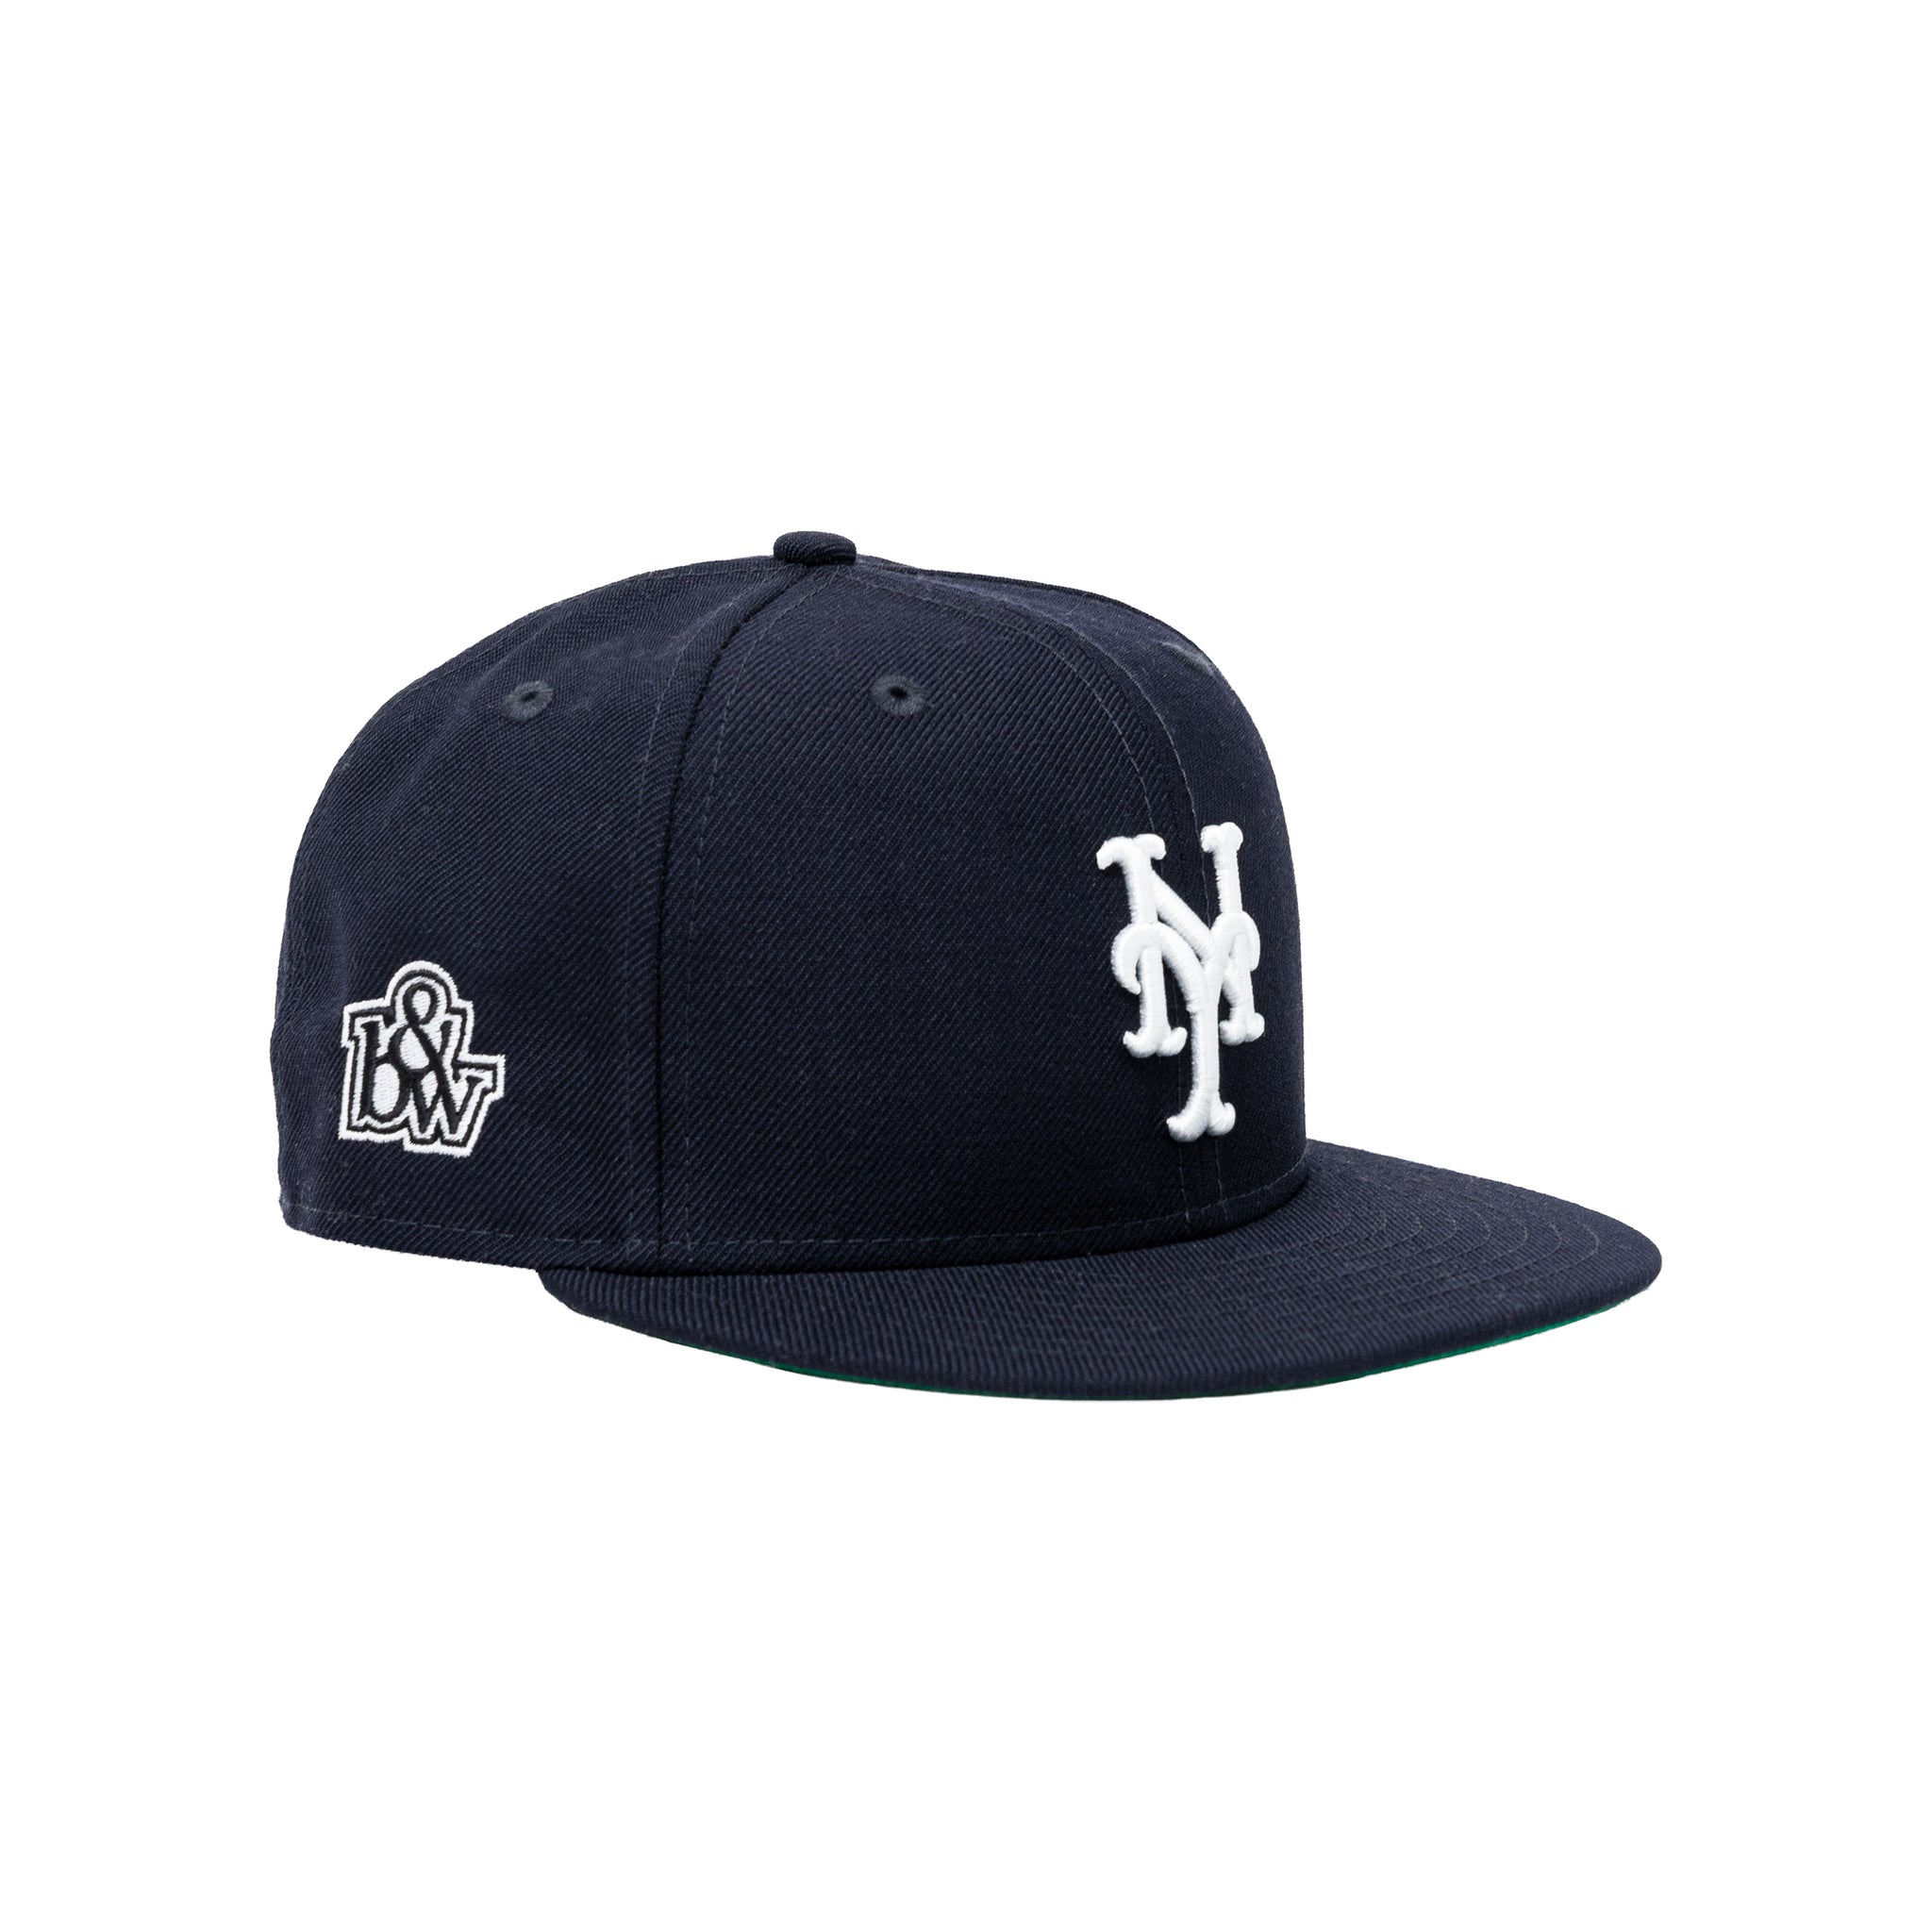 b&w x New Era for The New York Mets, Navy